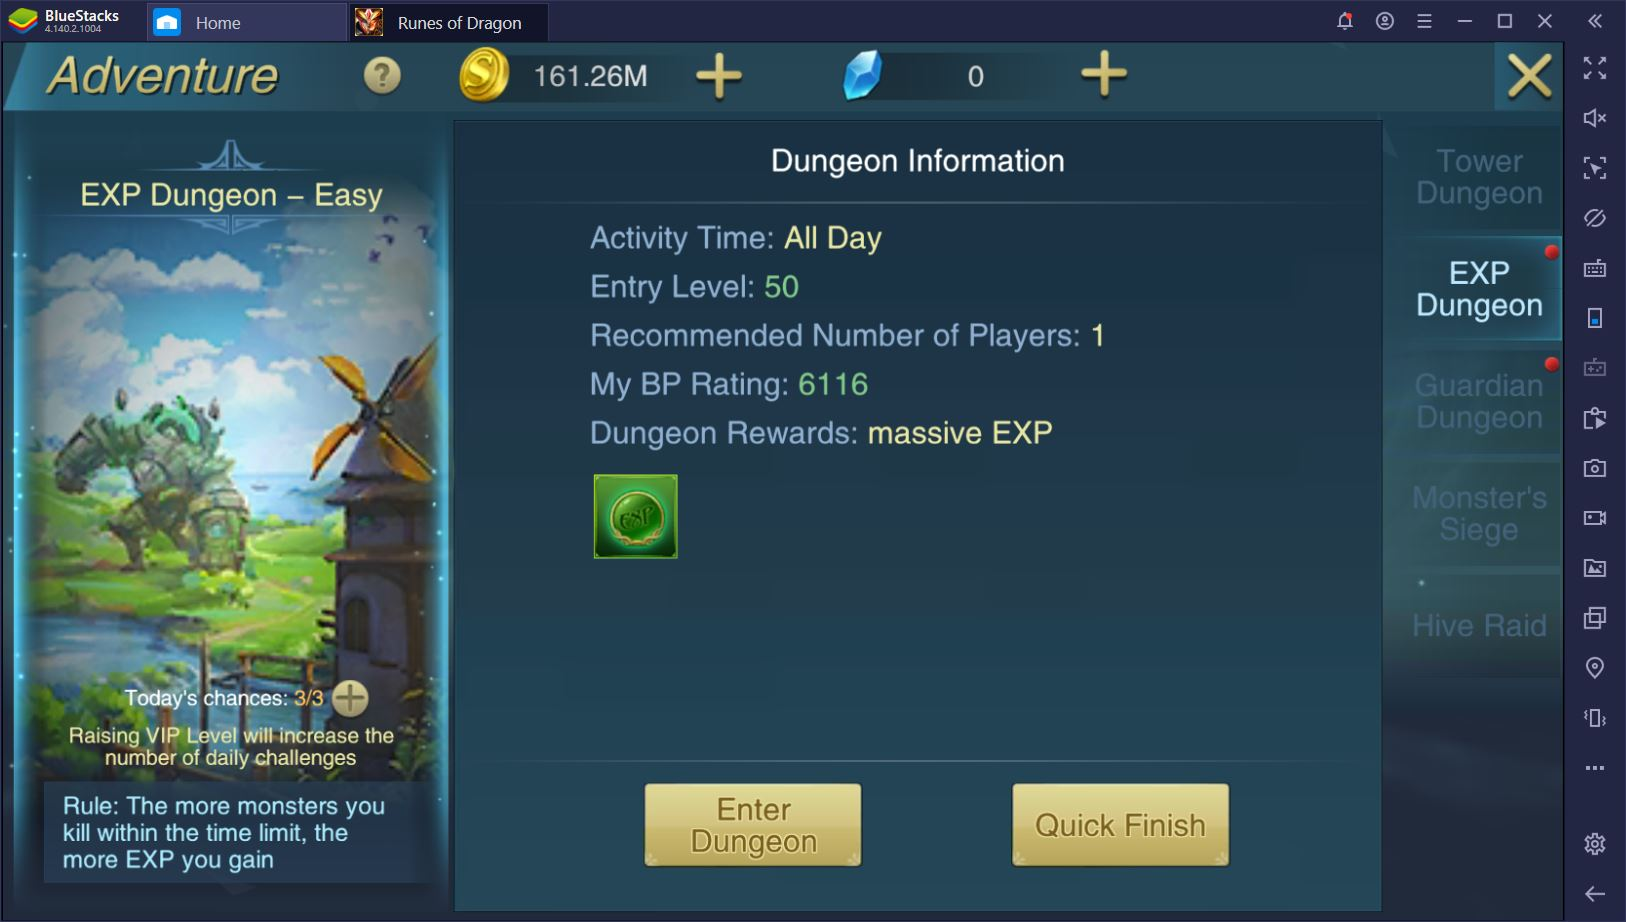 Runes of Dragon on PC: Tips and Tricks for Beginners